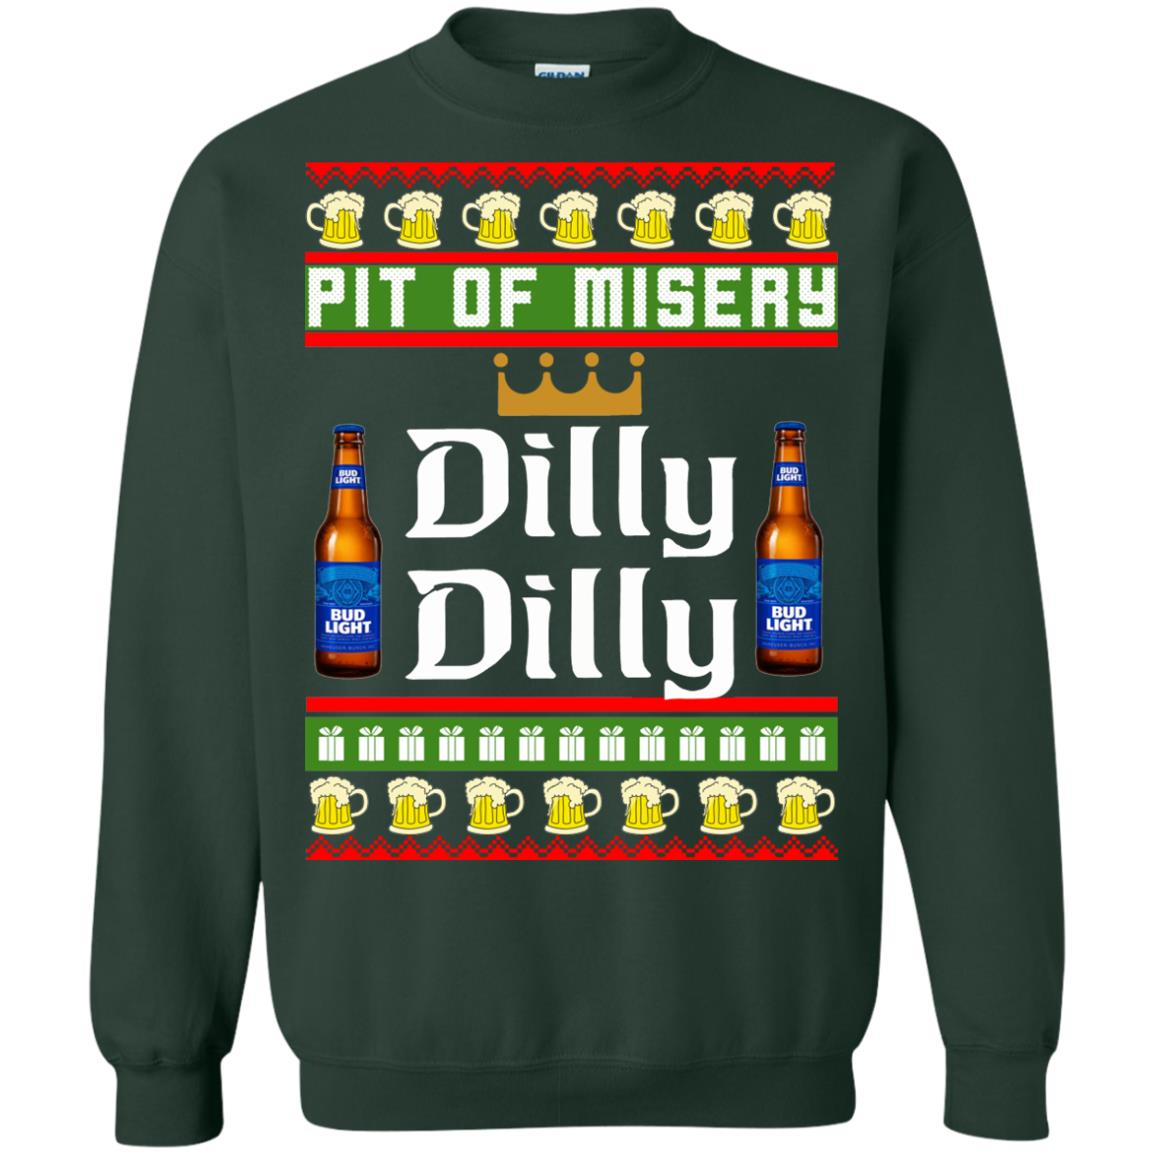 image 6387 - Pit Of Misery Dilly Dilly Ugly Sweater, Long Sleeve